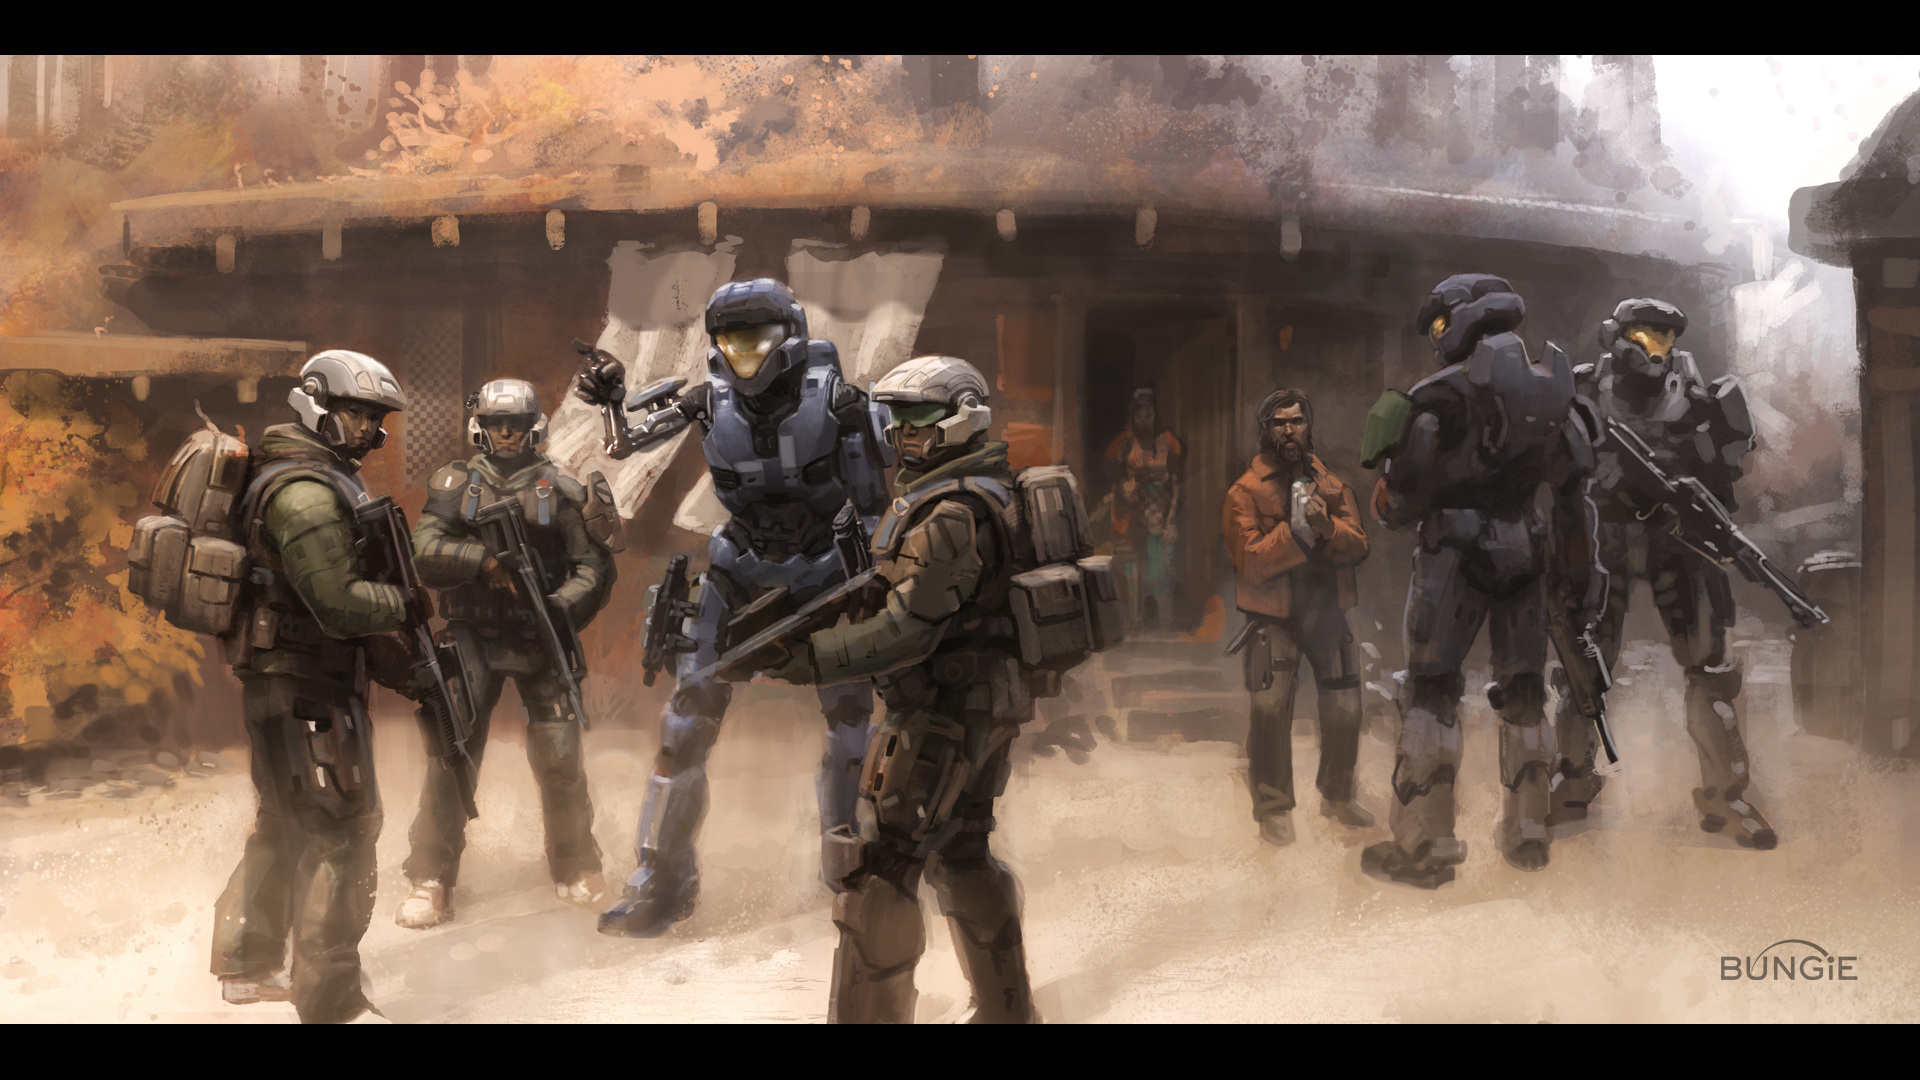 Video Game - Halo  - Video - Game - Spartan - Soldiers - Soldier Wallpaper